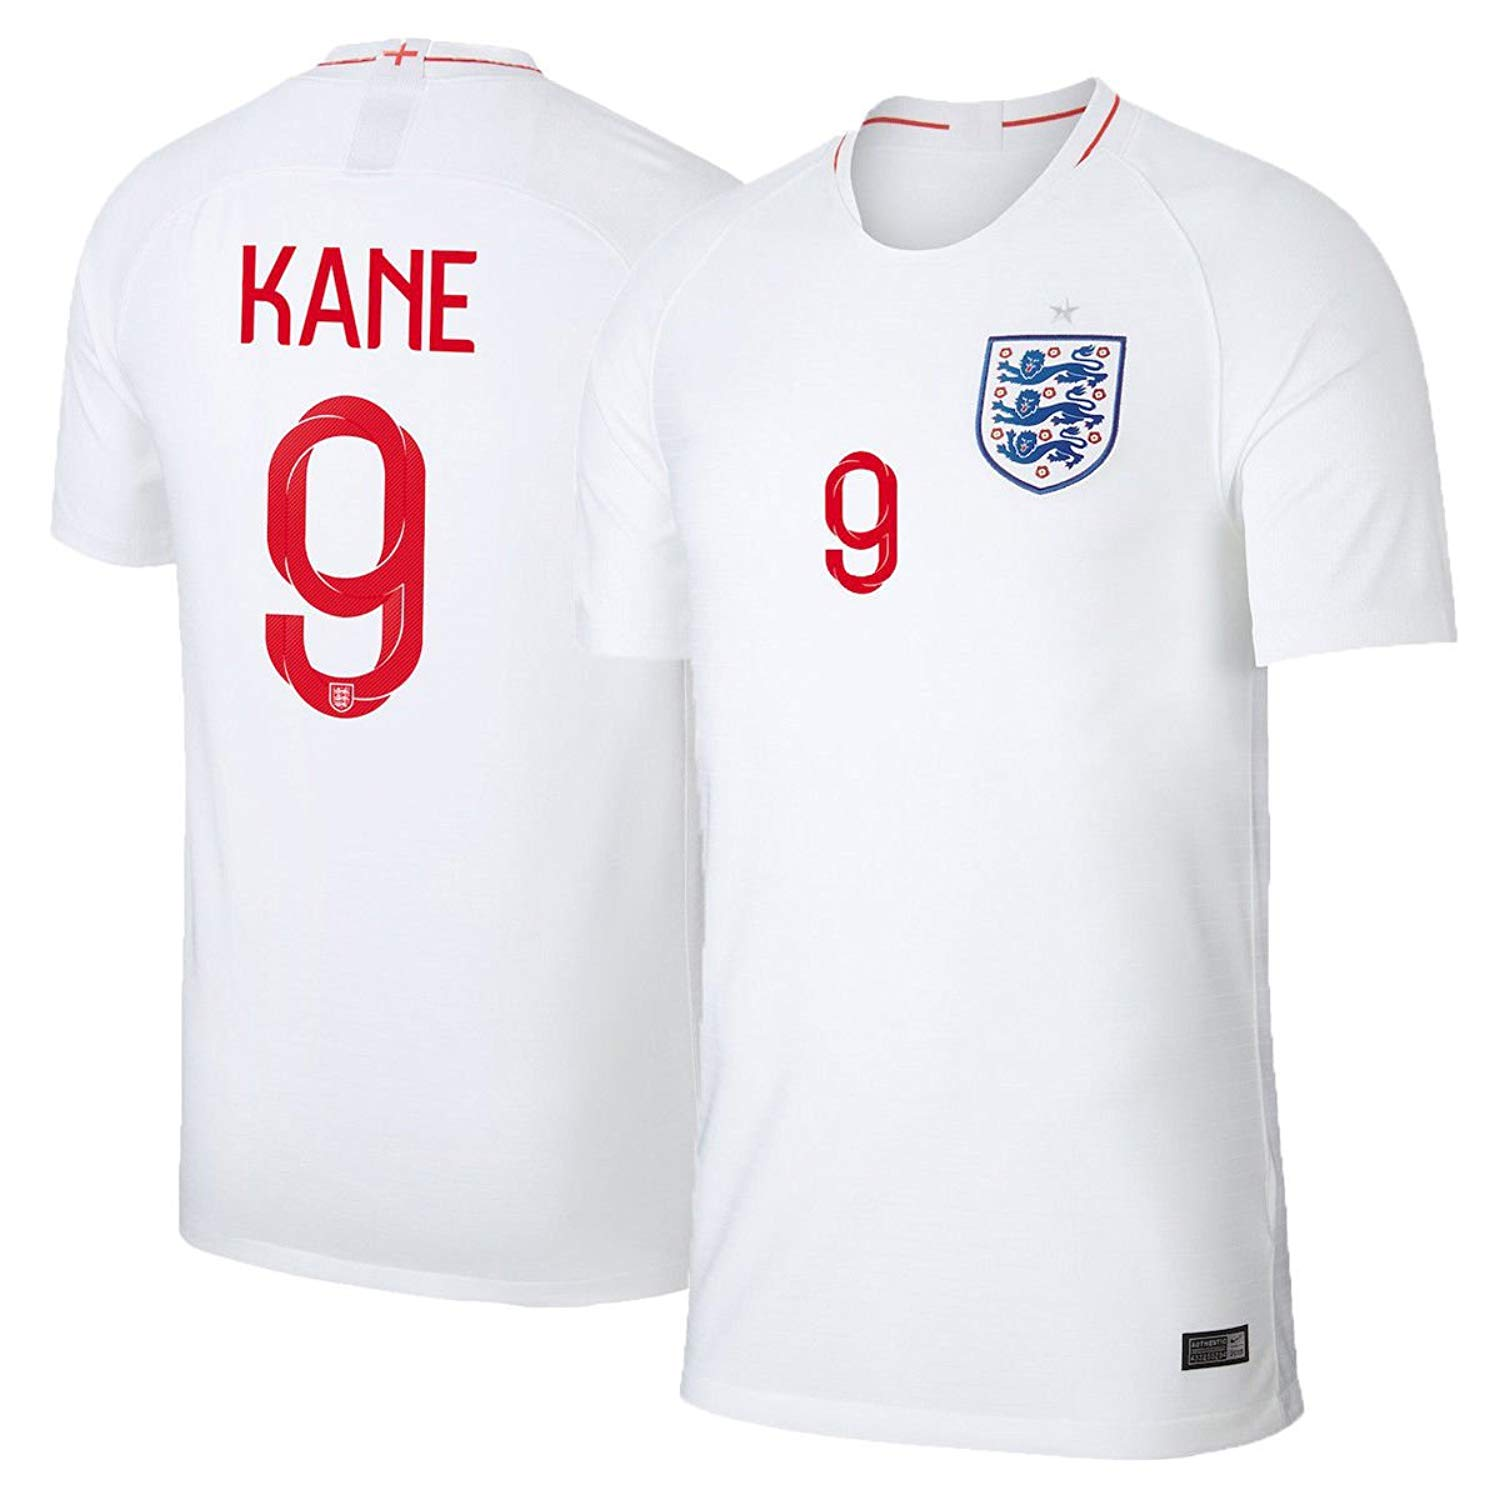 Get Quotations · LINjsy 2018 Russia World Cup Kane  10 England Home Soccer  Jersey Size M b4f551e55